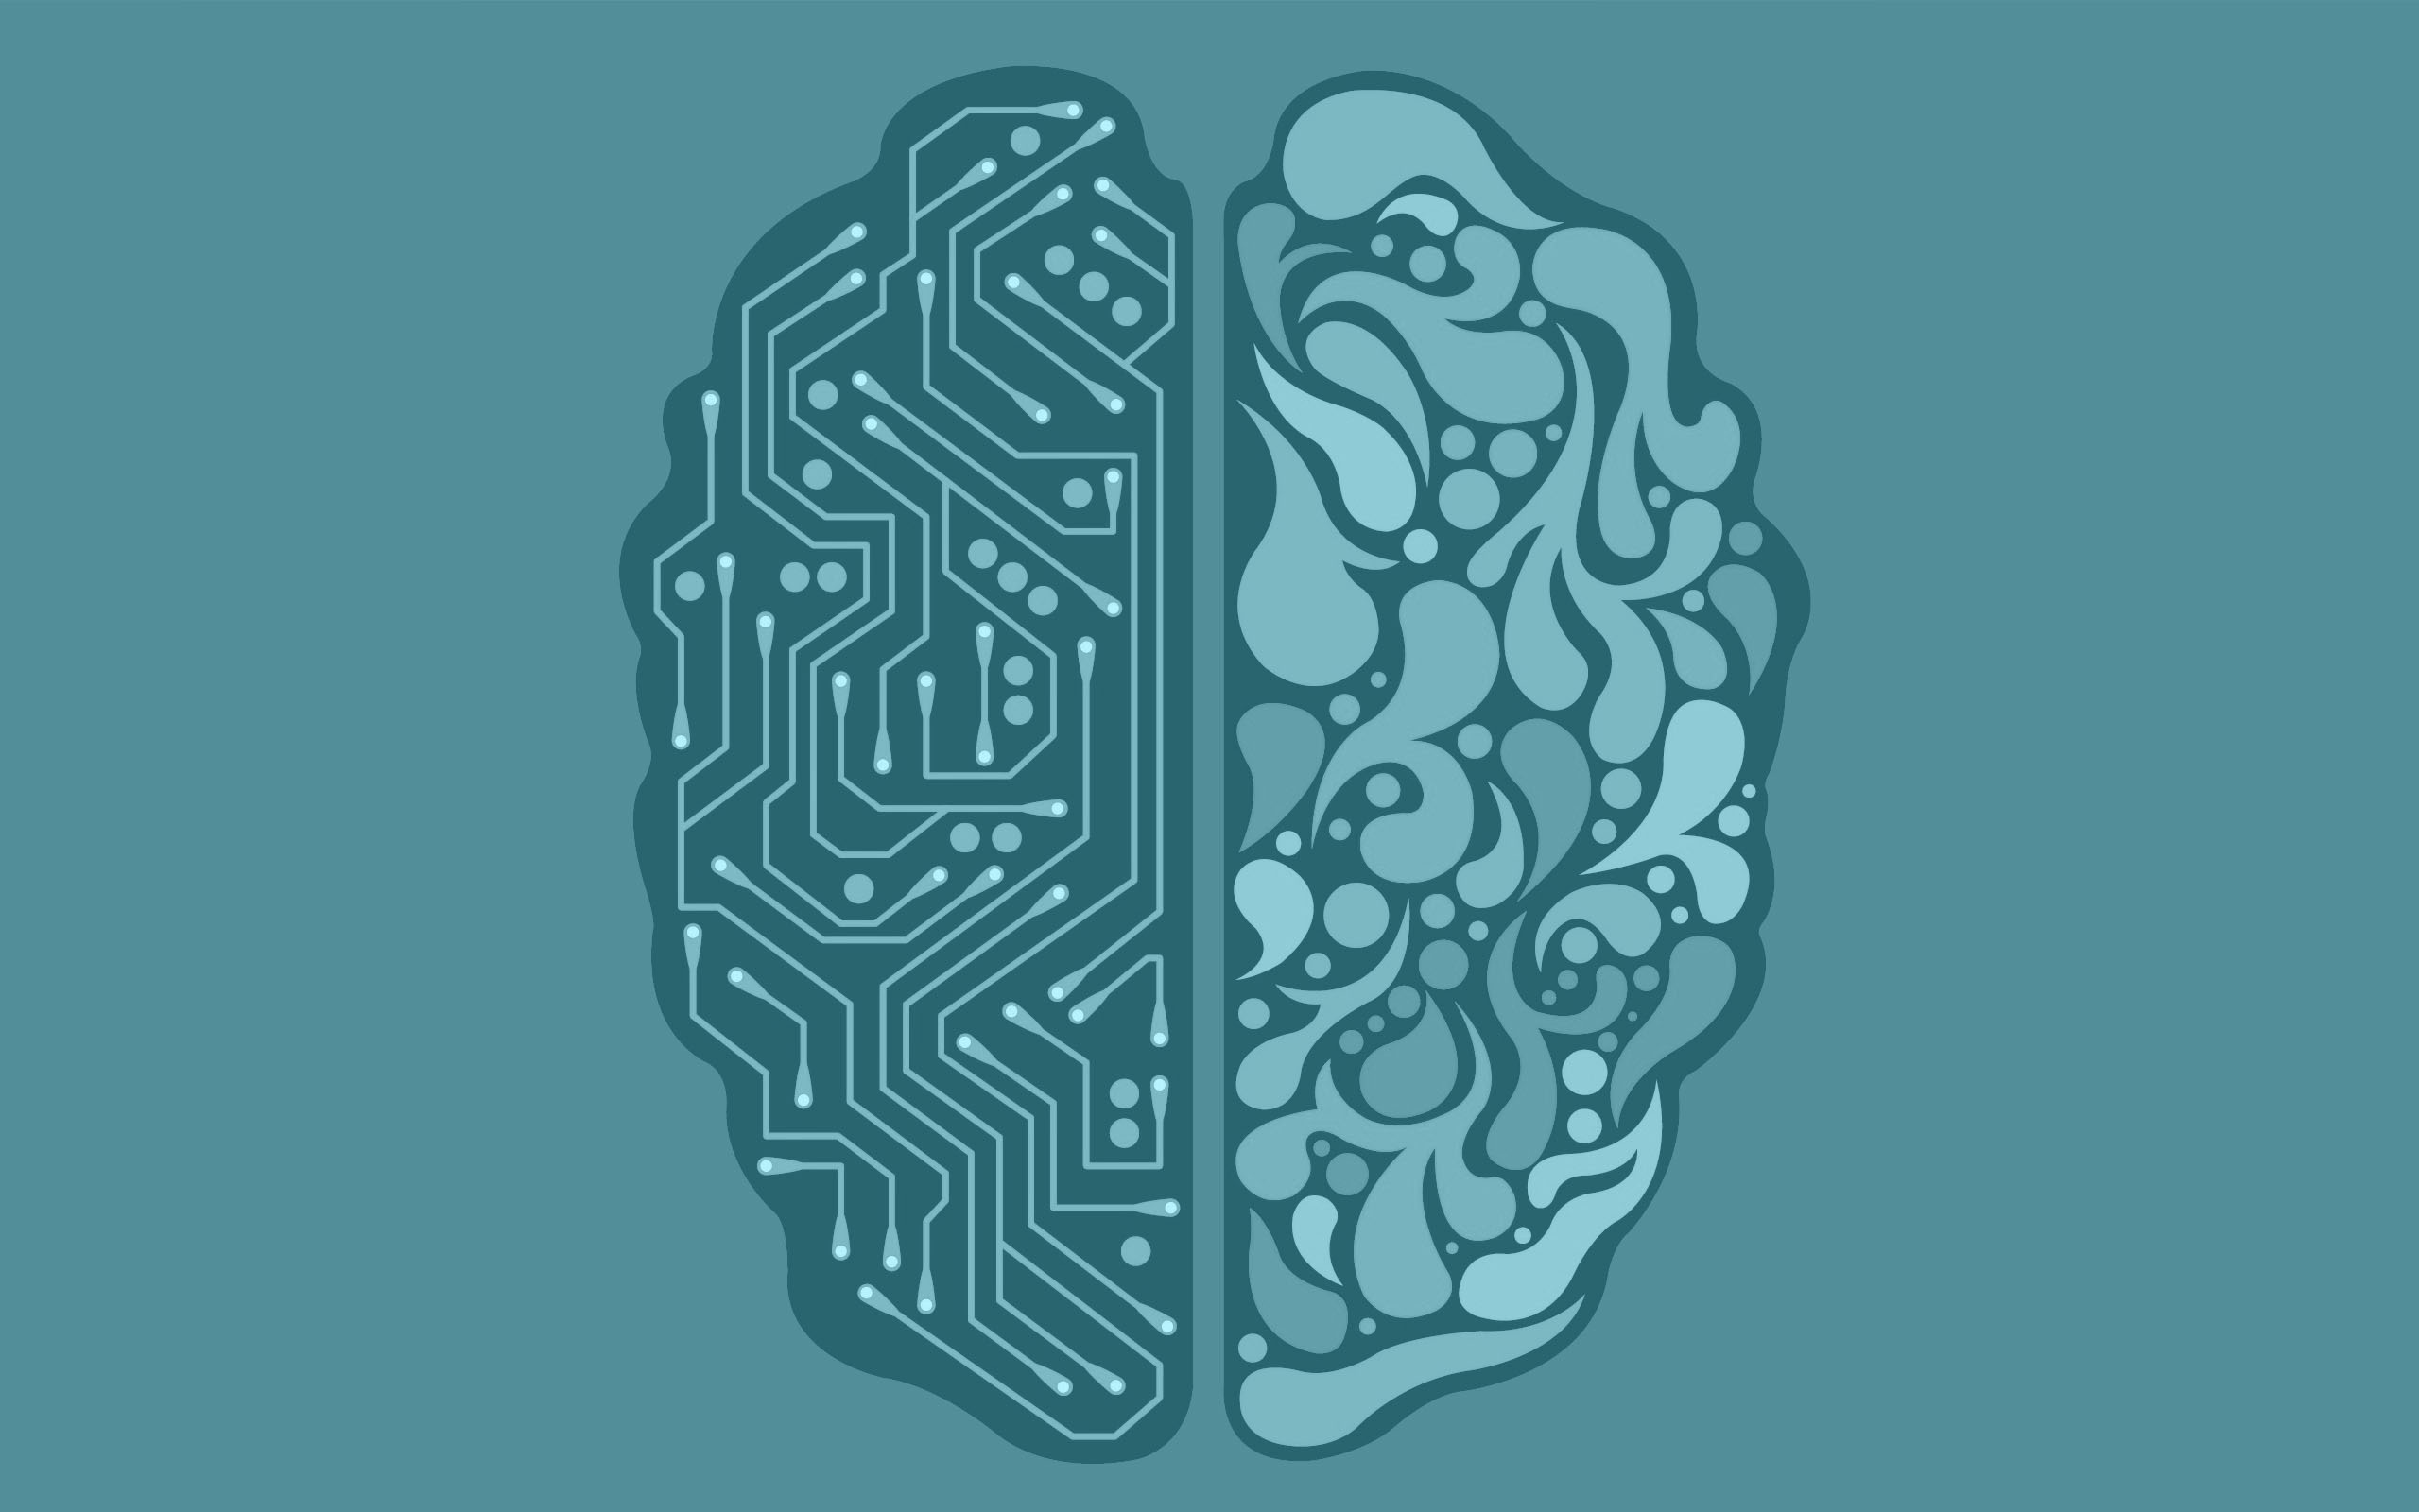 AndPlus builds custom software implementing machine learning and artificial intelligence models. Our AI/ML research and development team leads the boston area.